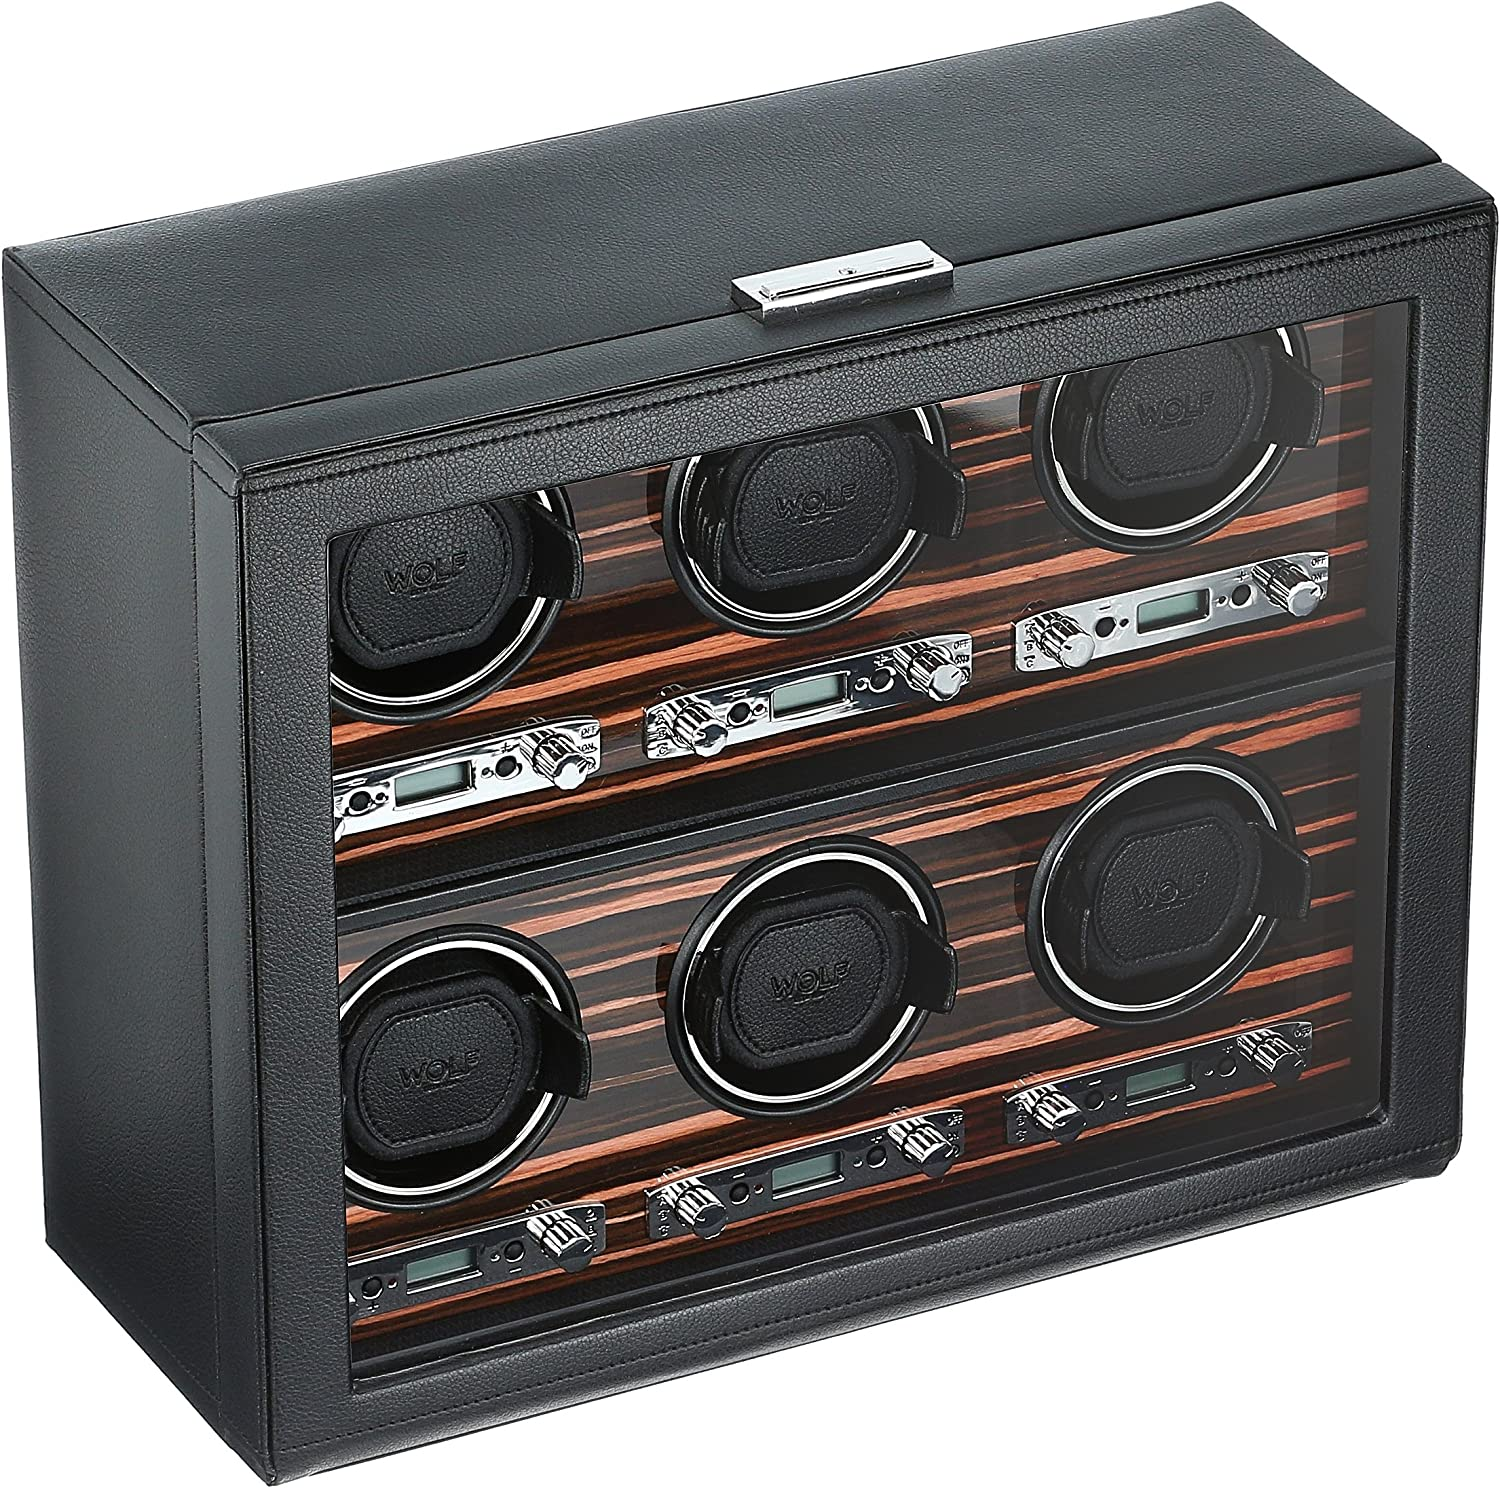 WOLF 459256 Roadster 6 Piece Watch Winder with Cover, Black: Watches